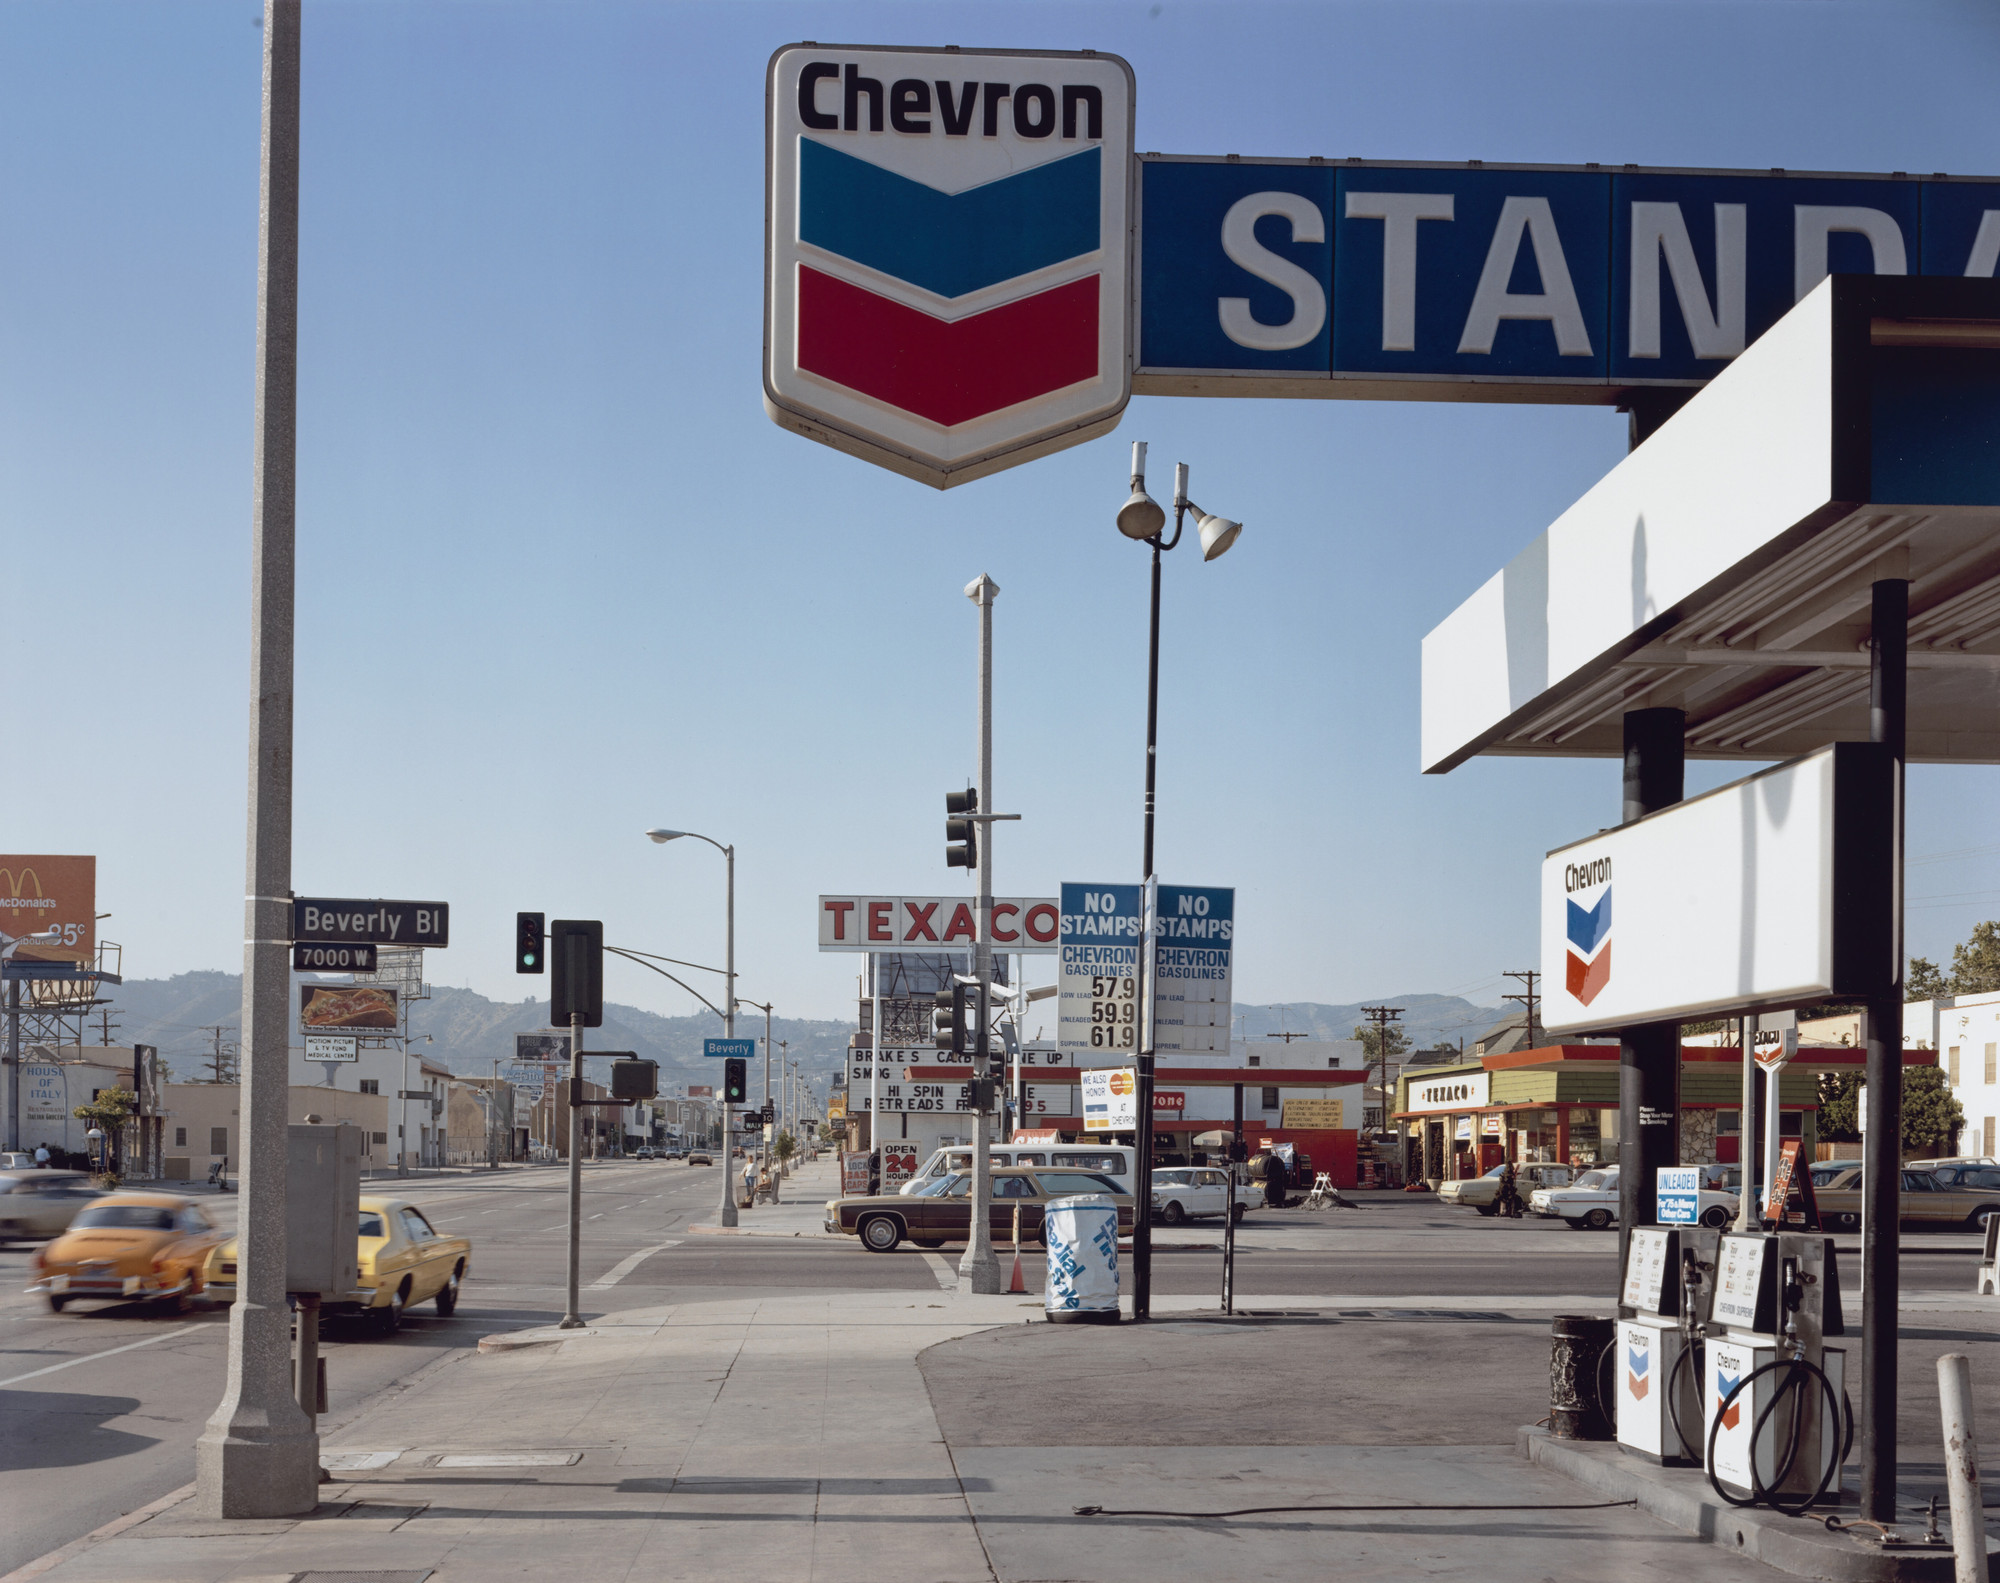 Stephen Shore. Beverly Boulevard and La Brea Avenue, Los Angeles, California, June 21, 1975. 1975